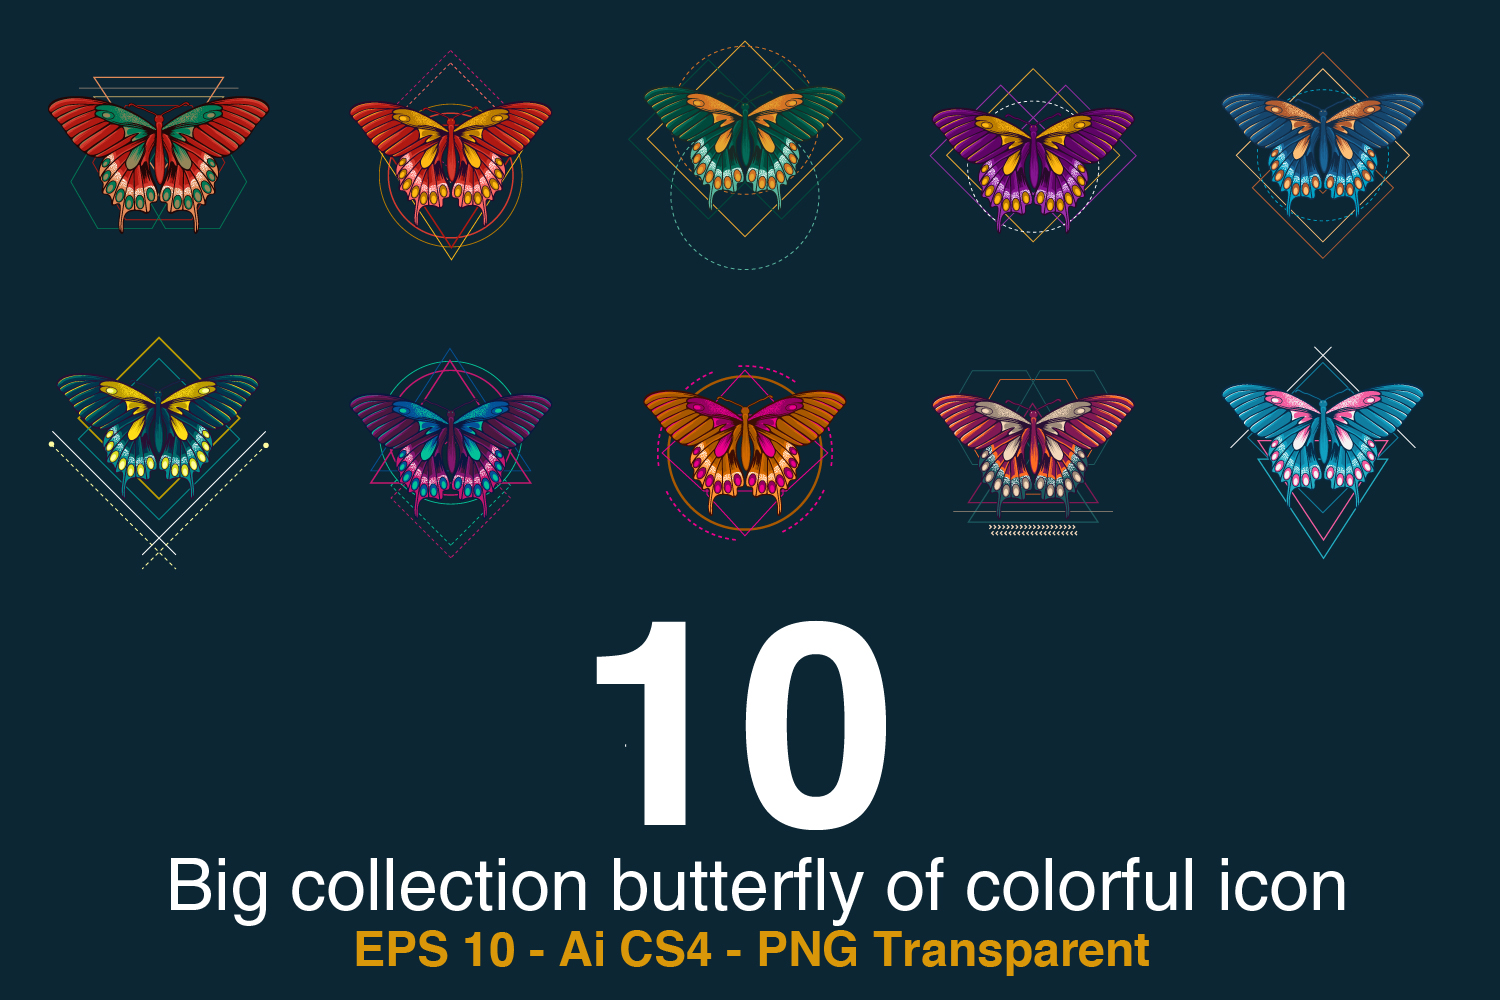 10 Big collection butterfly of colorful icon example image 2